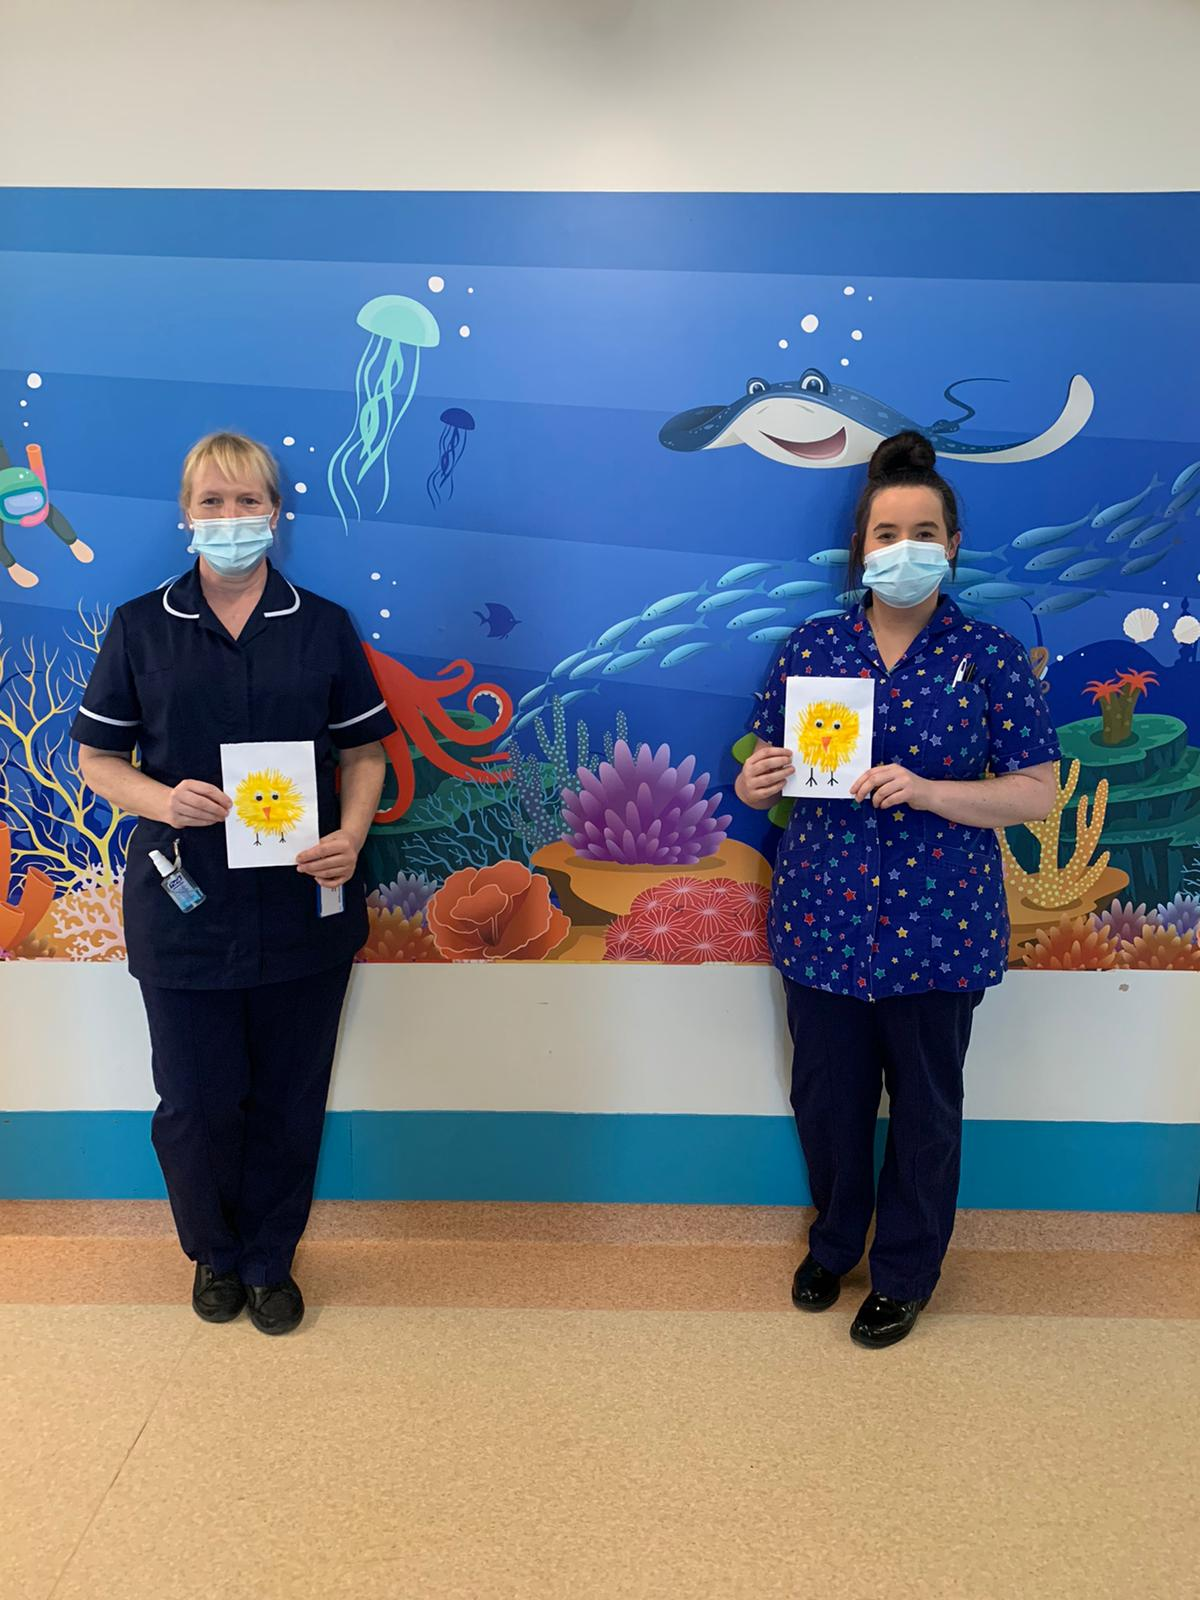 Children's nurses egg-stend their support for WISHH Charity's Easter Appeal